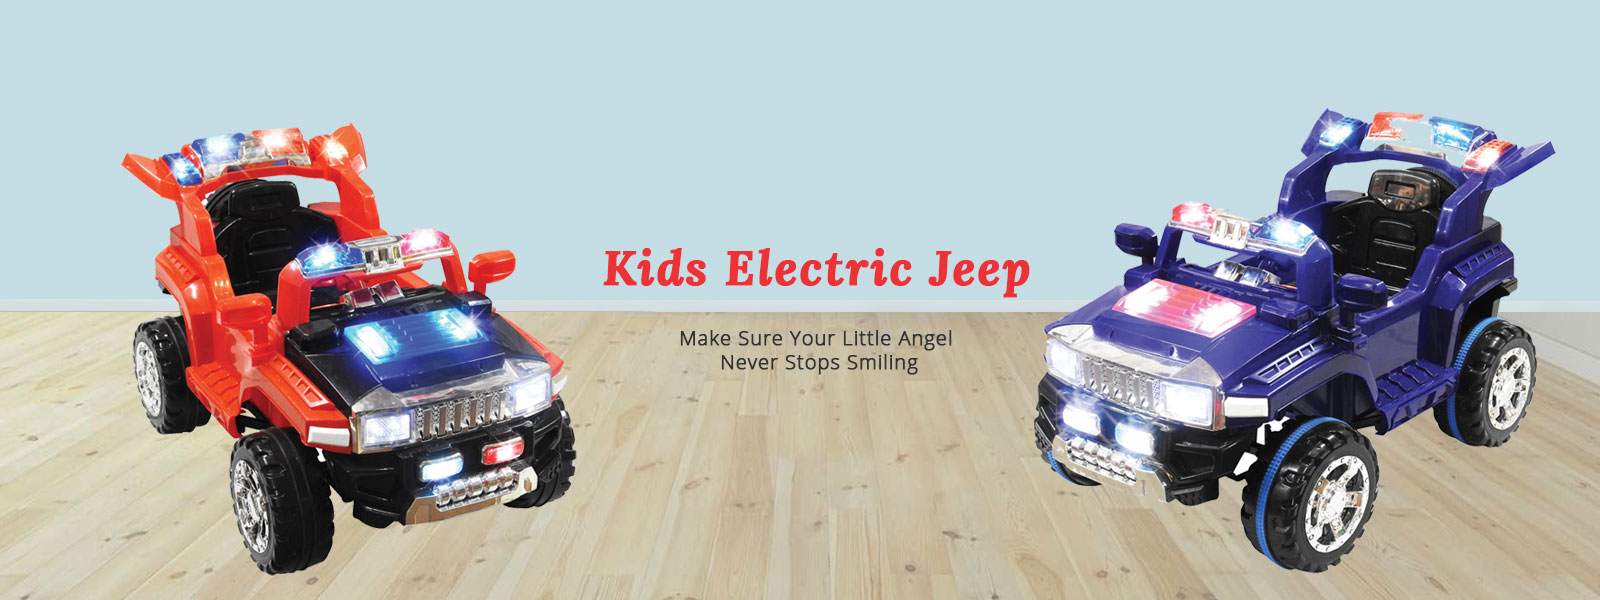 Kids Electric Jeep Manufacturers in Prayagraj